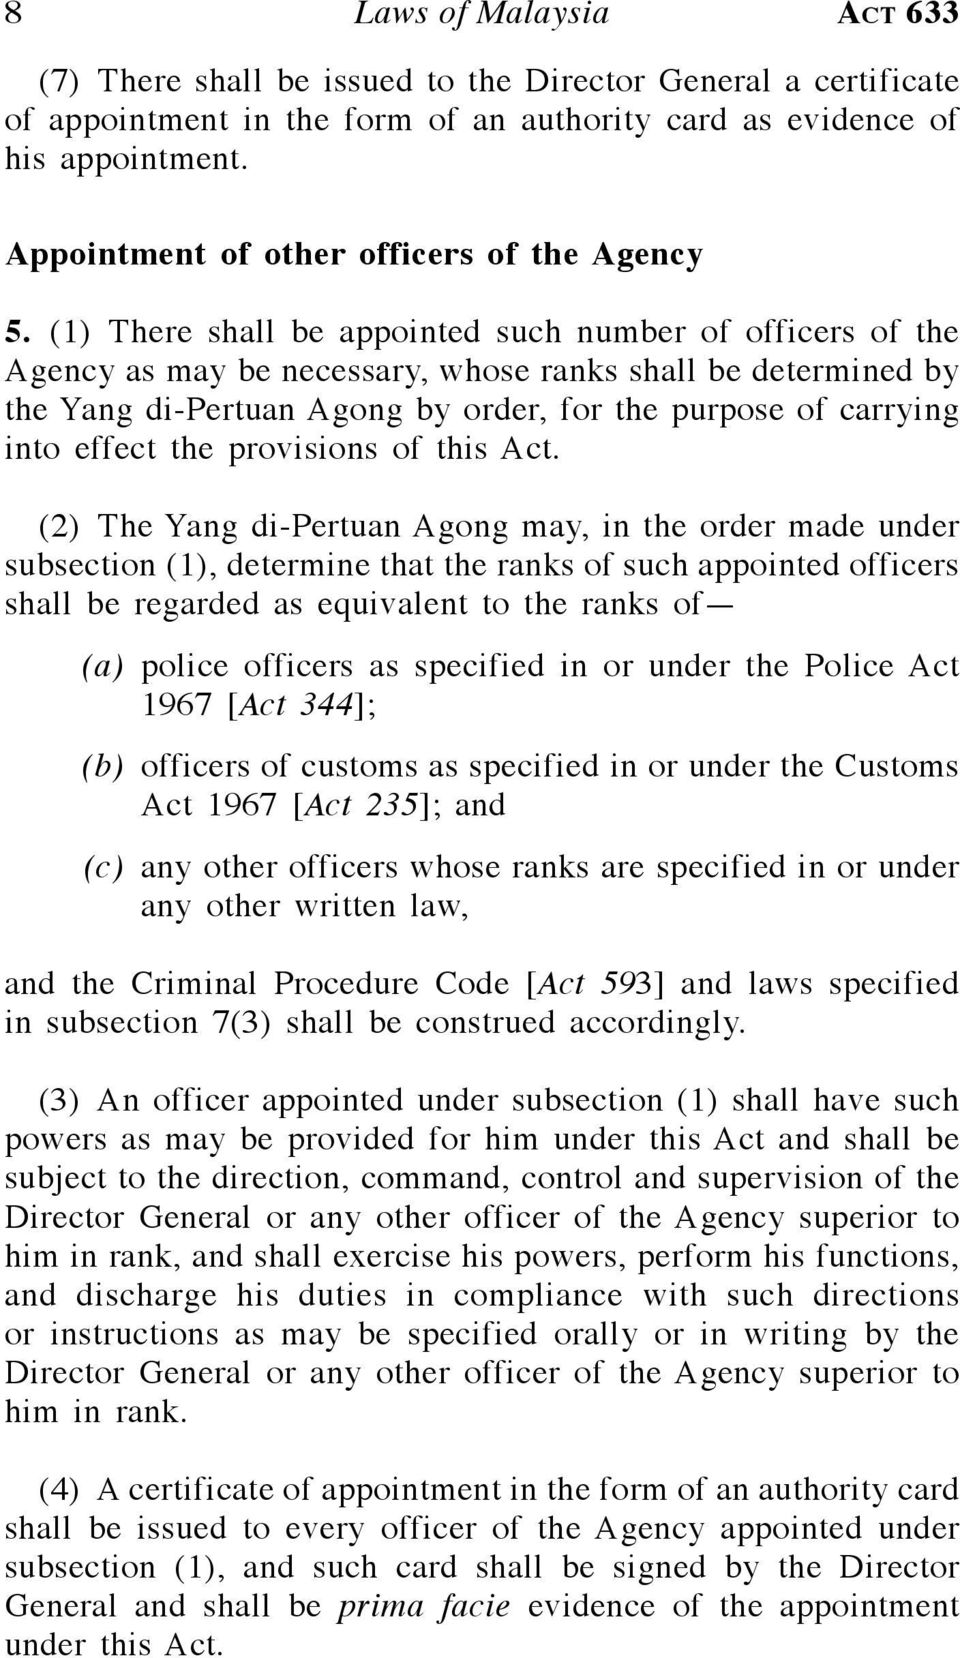 (1) There shall be appointed such number of officers of the Agency as may be necessary, whose ranks shall be determined by the Yang di-pertuan Agong by order, for the purpose of carrying into effect